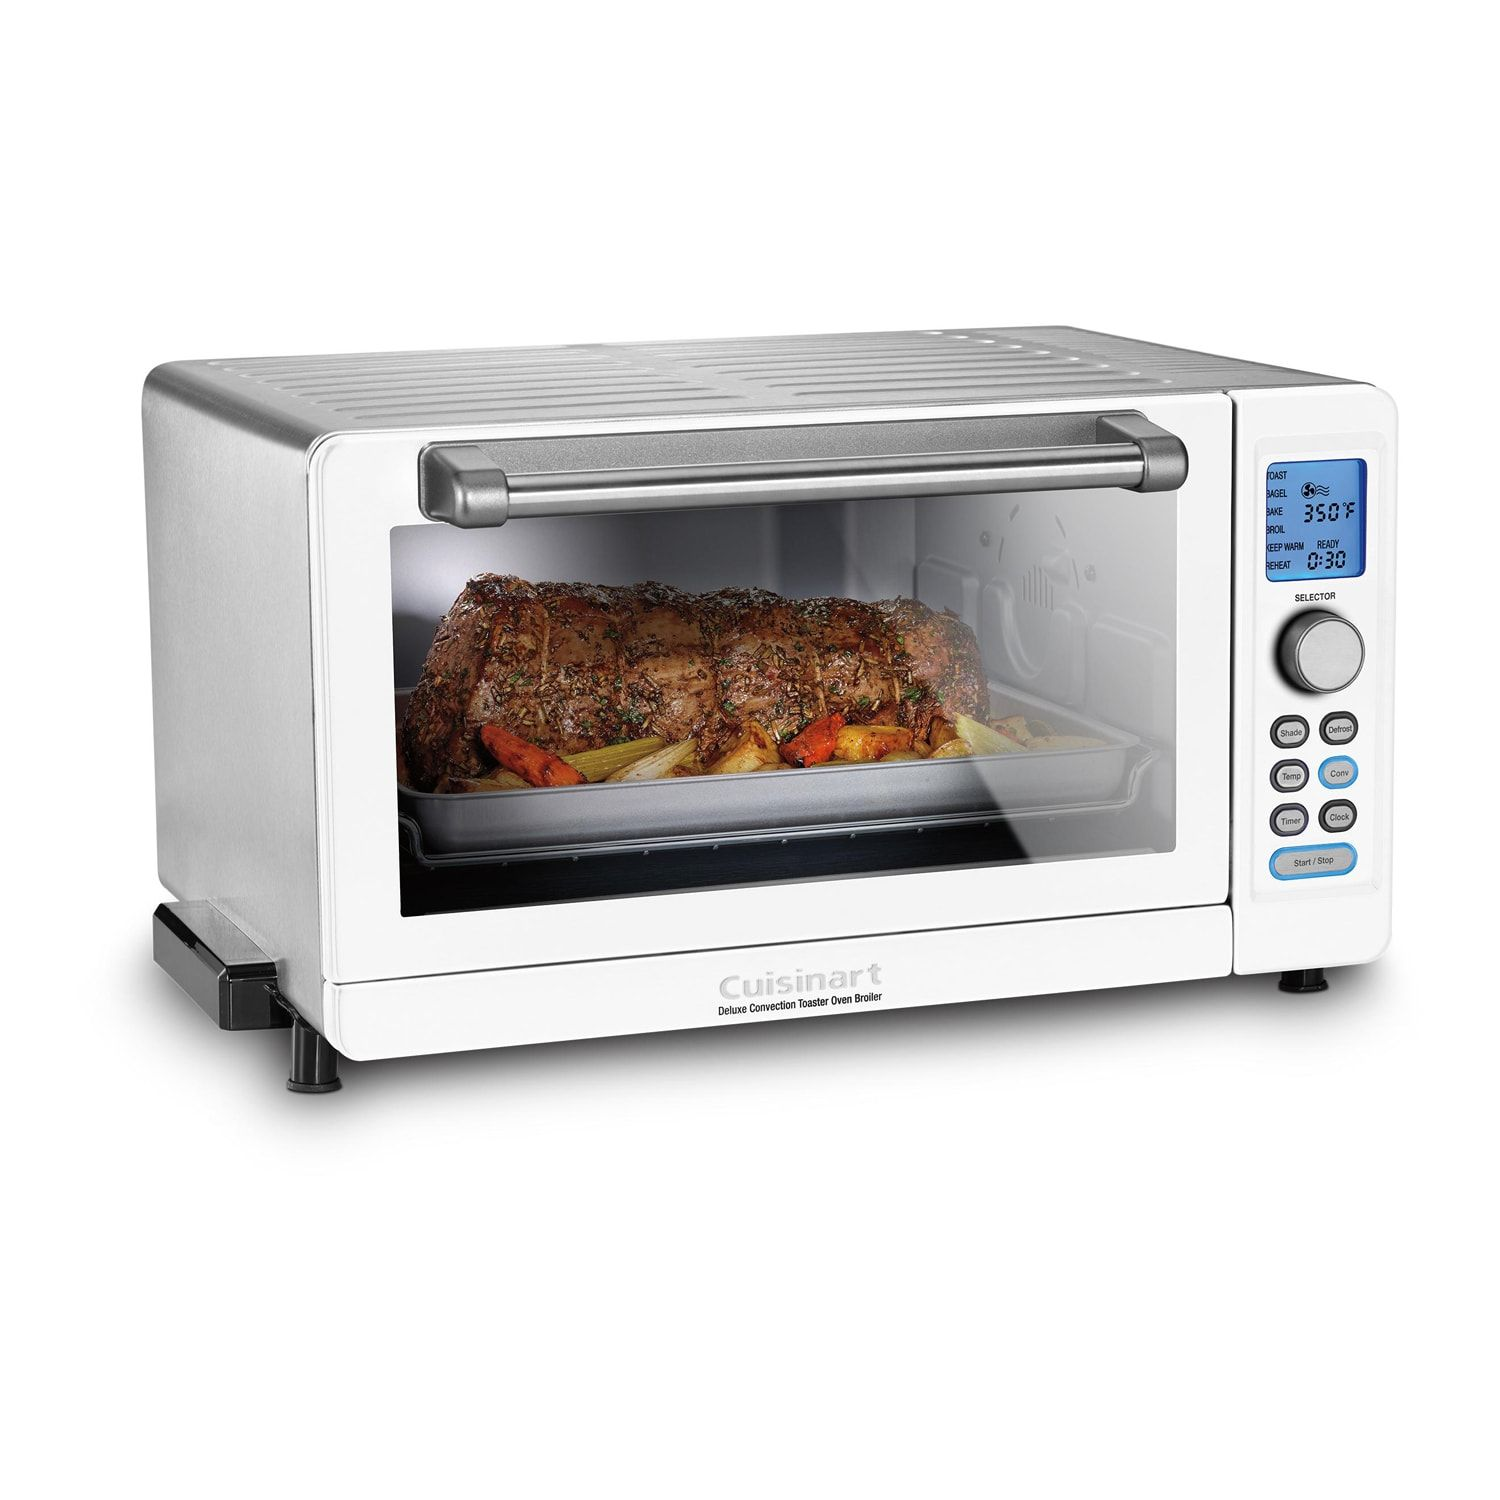 Cuisinart Deluxe Convection Toaster Oven Broiler Affiliate Convection Affiliate Deluxe Cuisinart Toaster Oven Countertop Oven Convection Toaster Oven